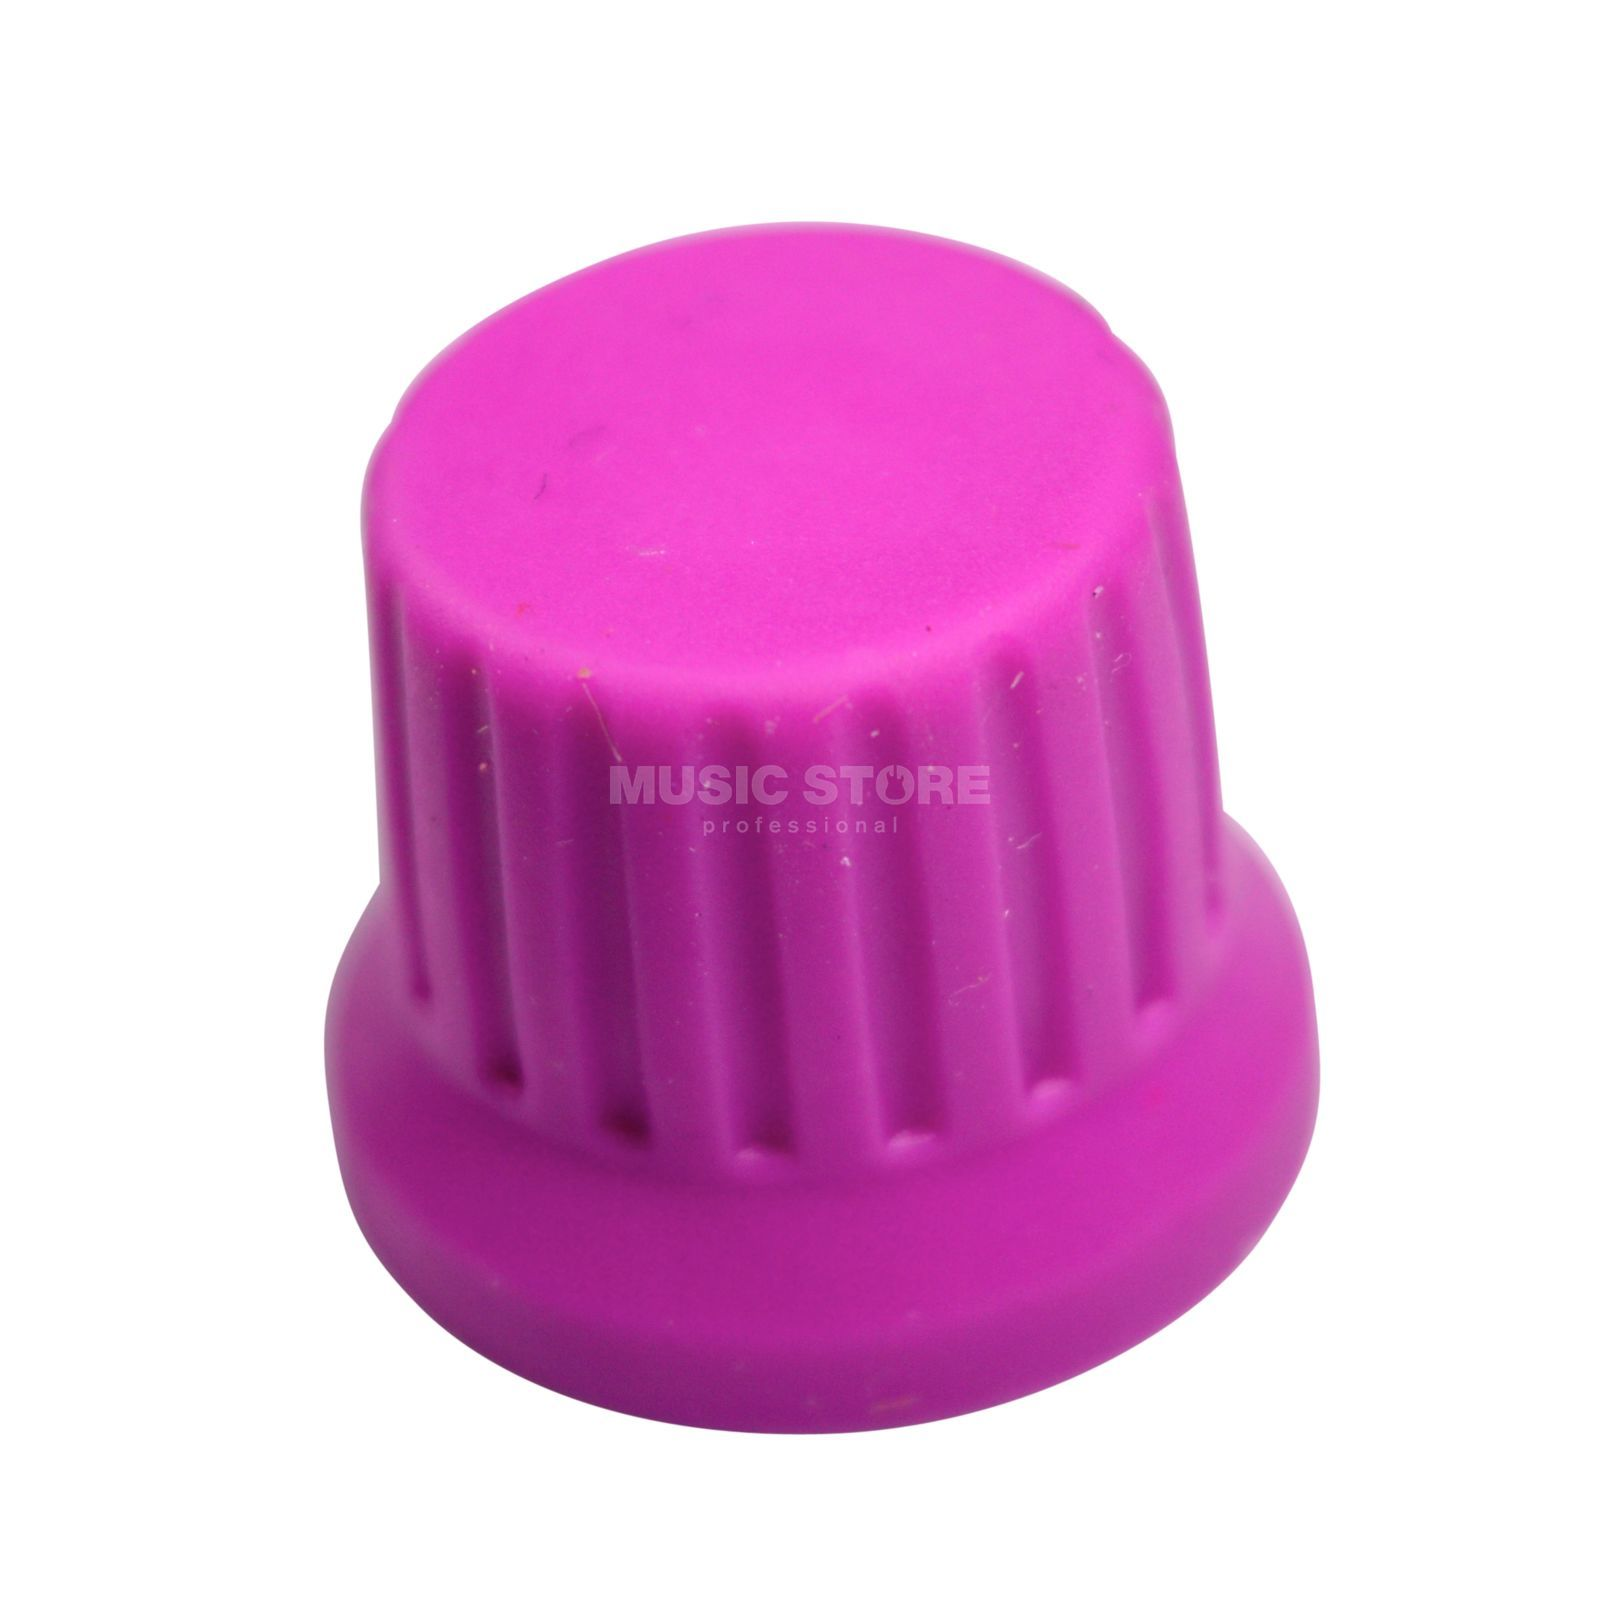 DJ TECHTOOLS Chroma Caps Encor Knob purple Produktbillede